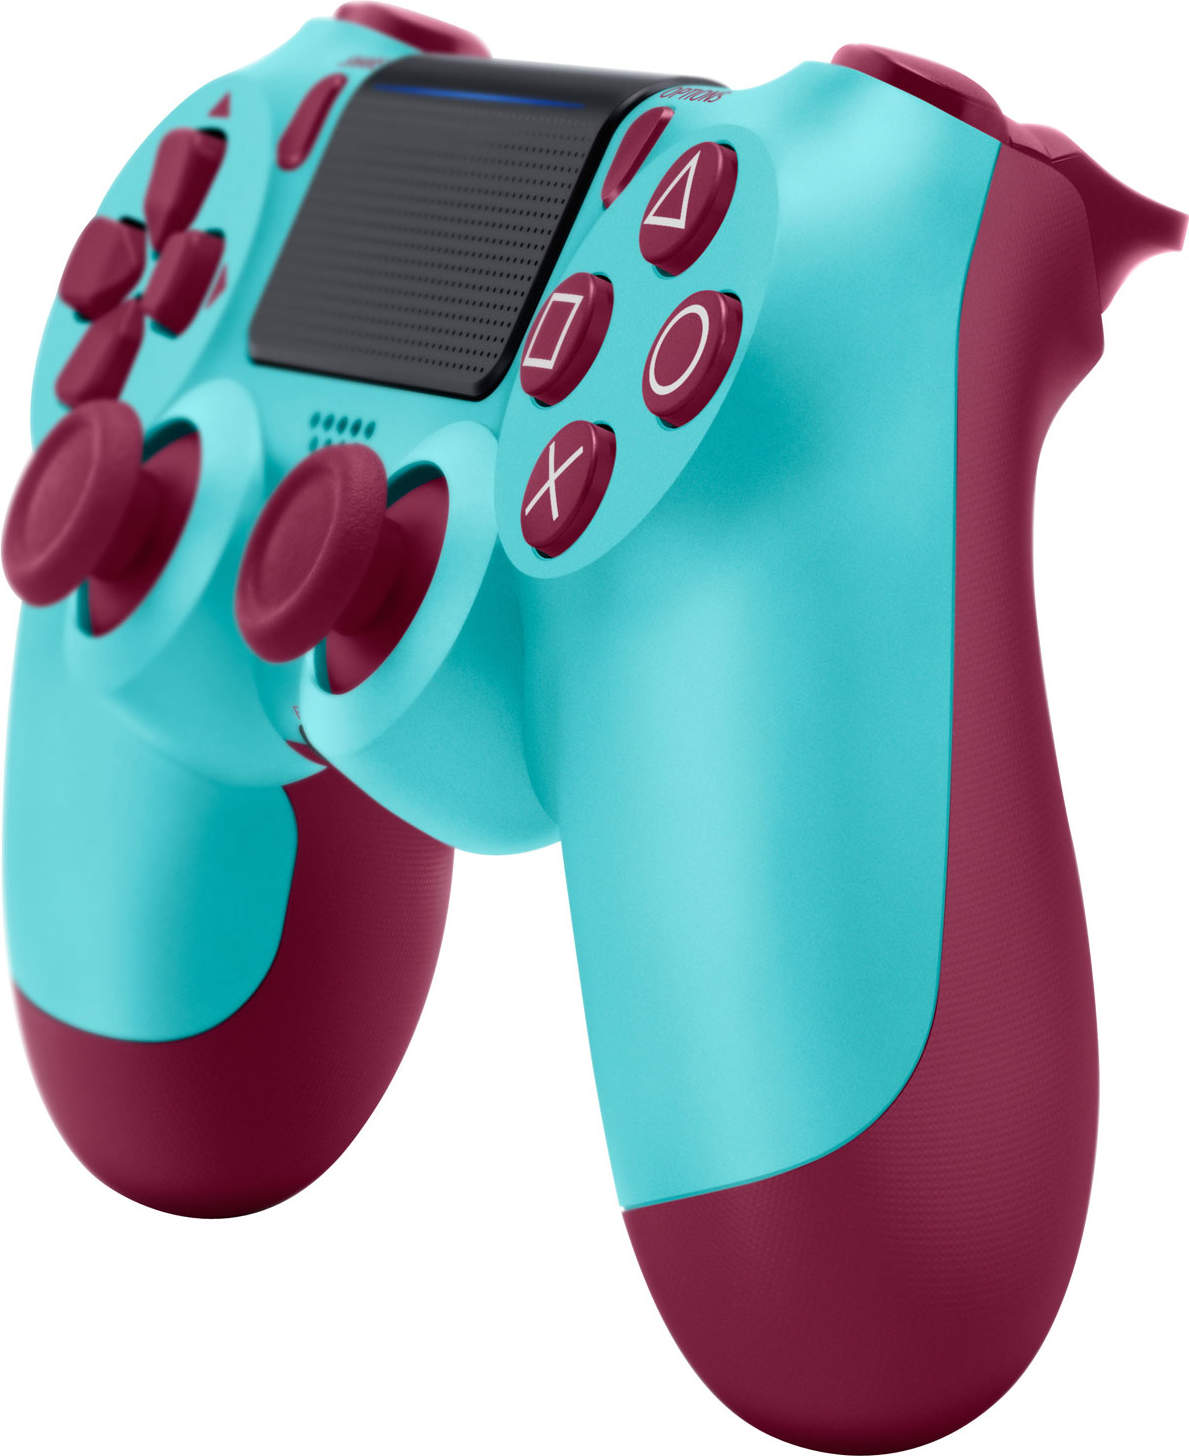 DualShock 4 v2 (Berry Blue)